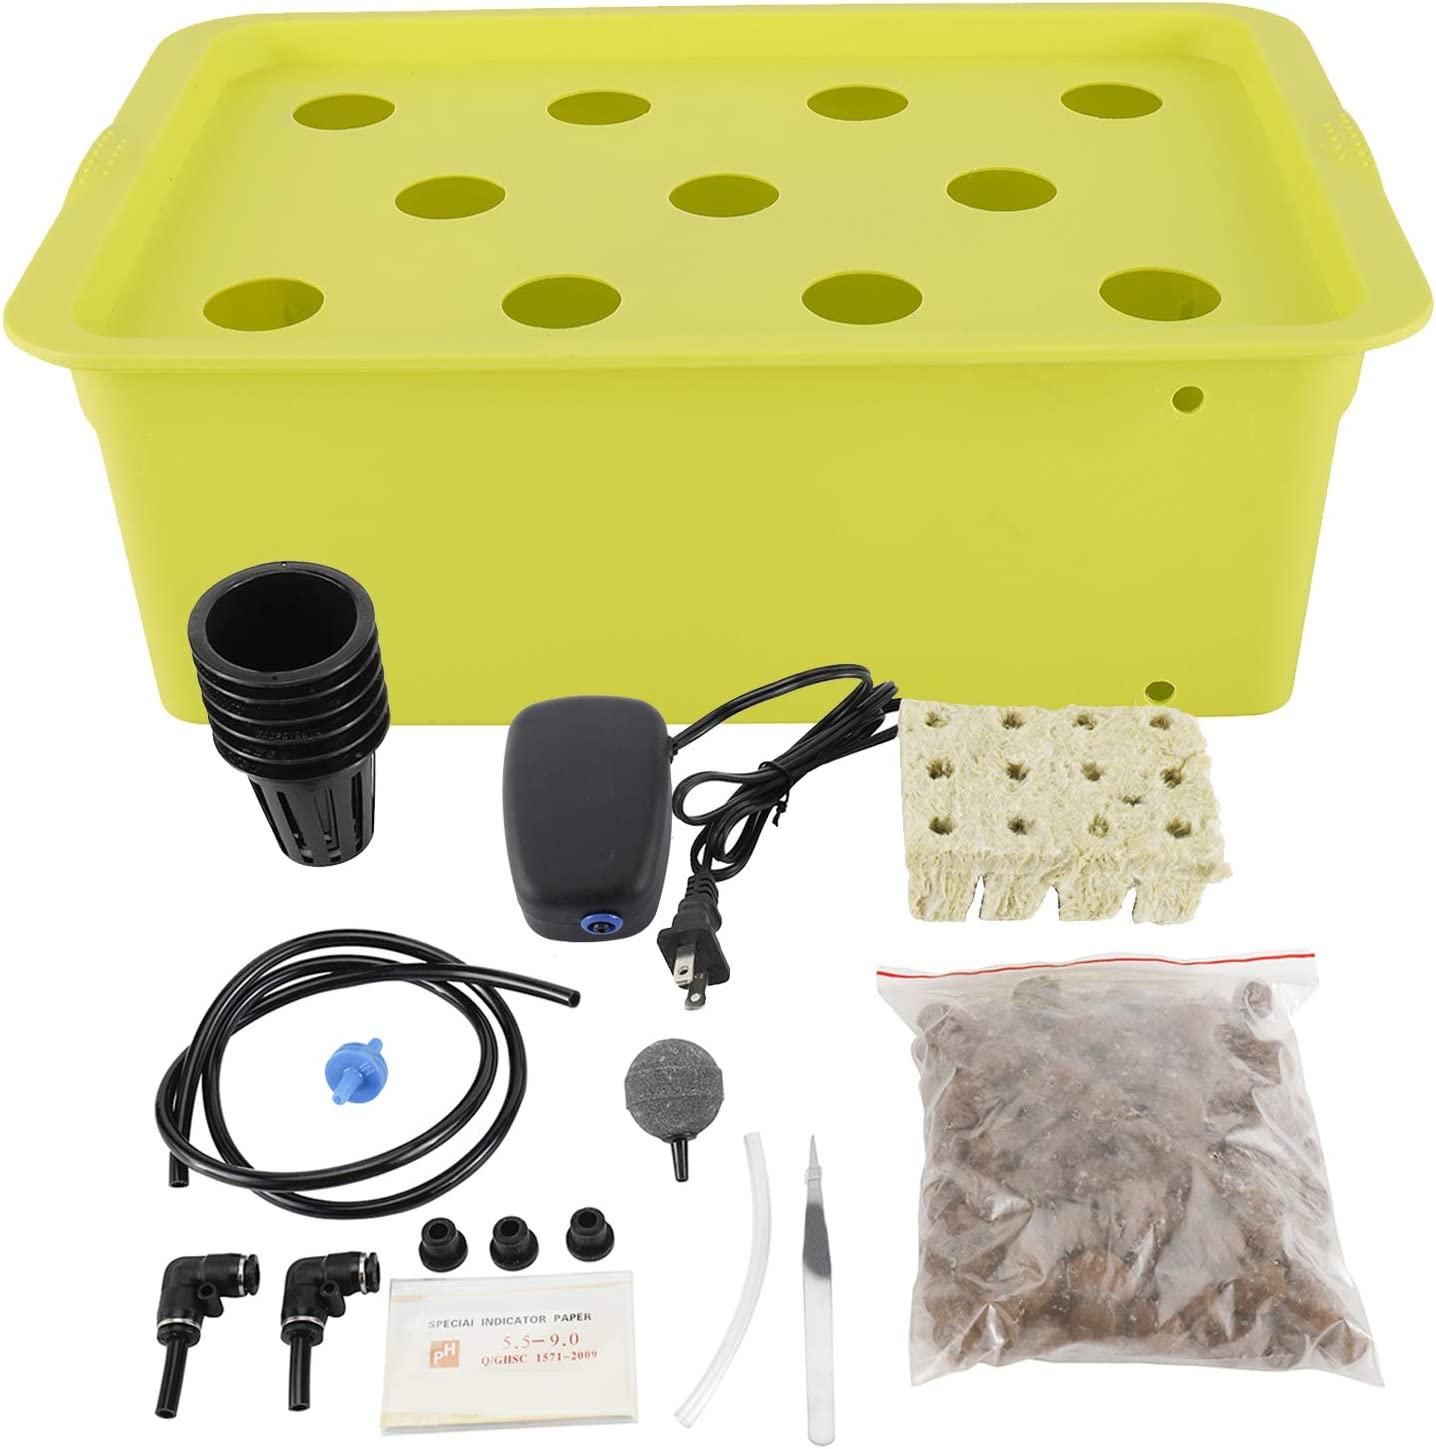 HighFree Hydroponic System Growing Kit for Plants Herb Garden Starter Set DIY Self Watering Indoor Hydroponics Tools with Large Bubble Stone Rockwool Bucket Air Pump (11 Sites)